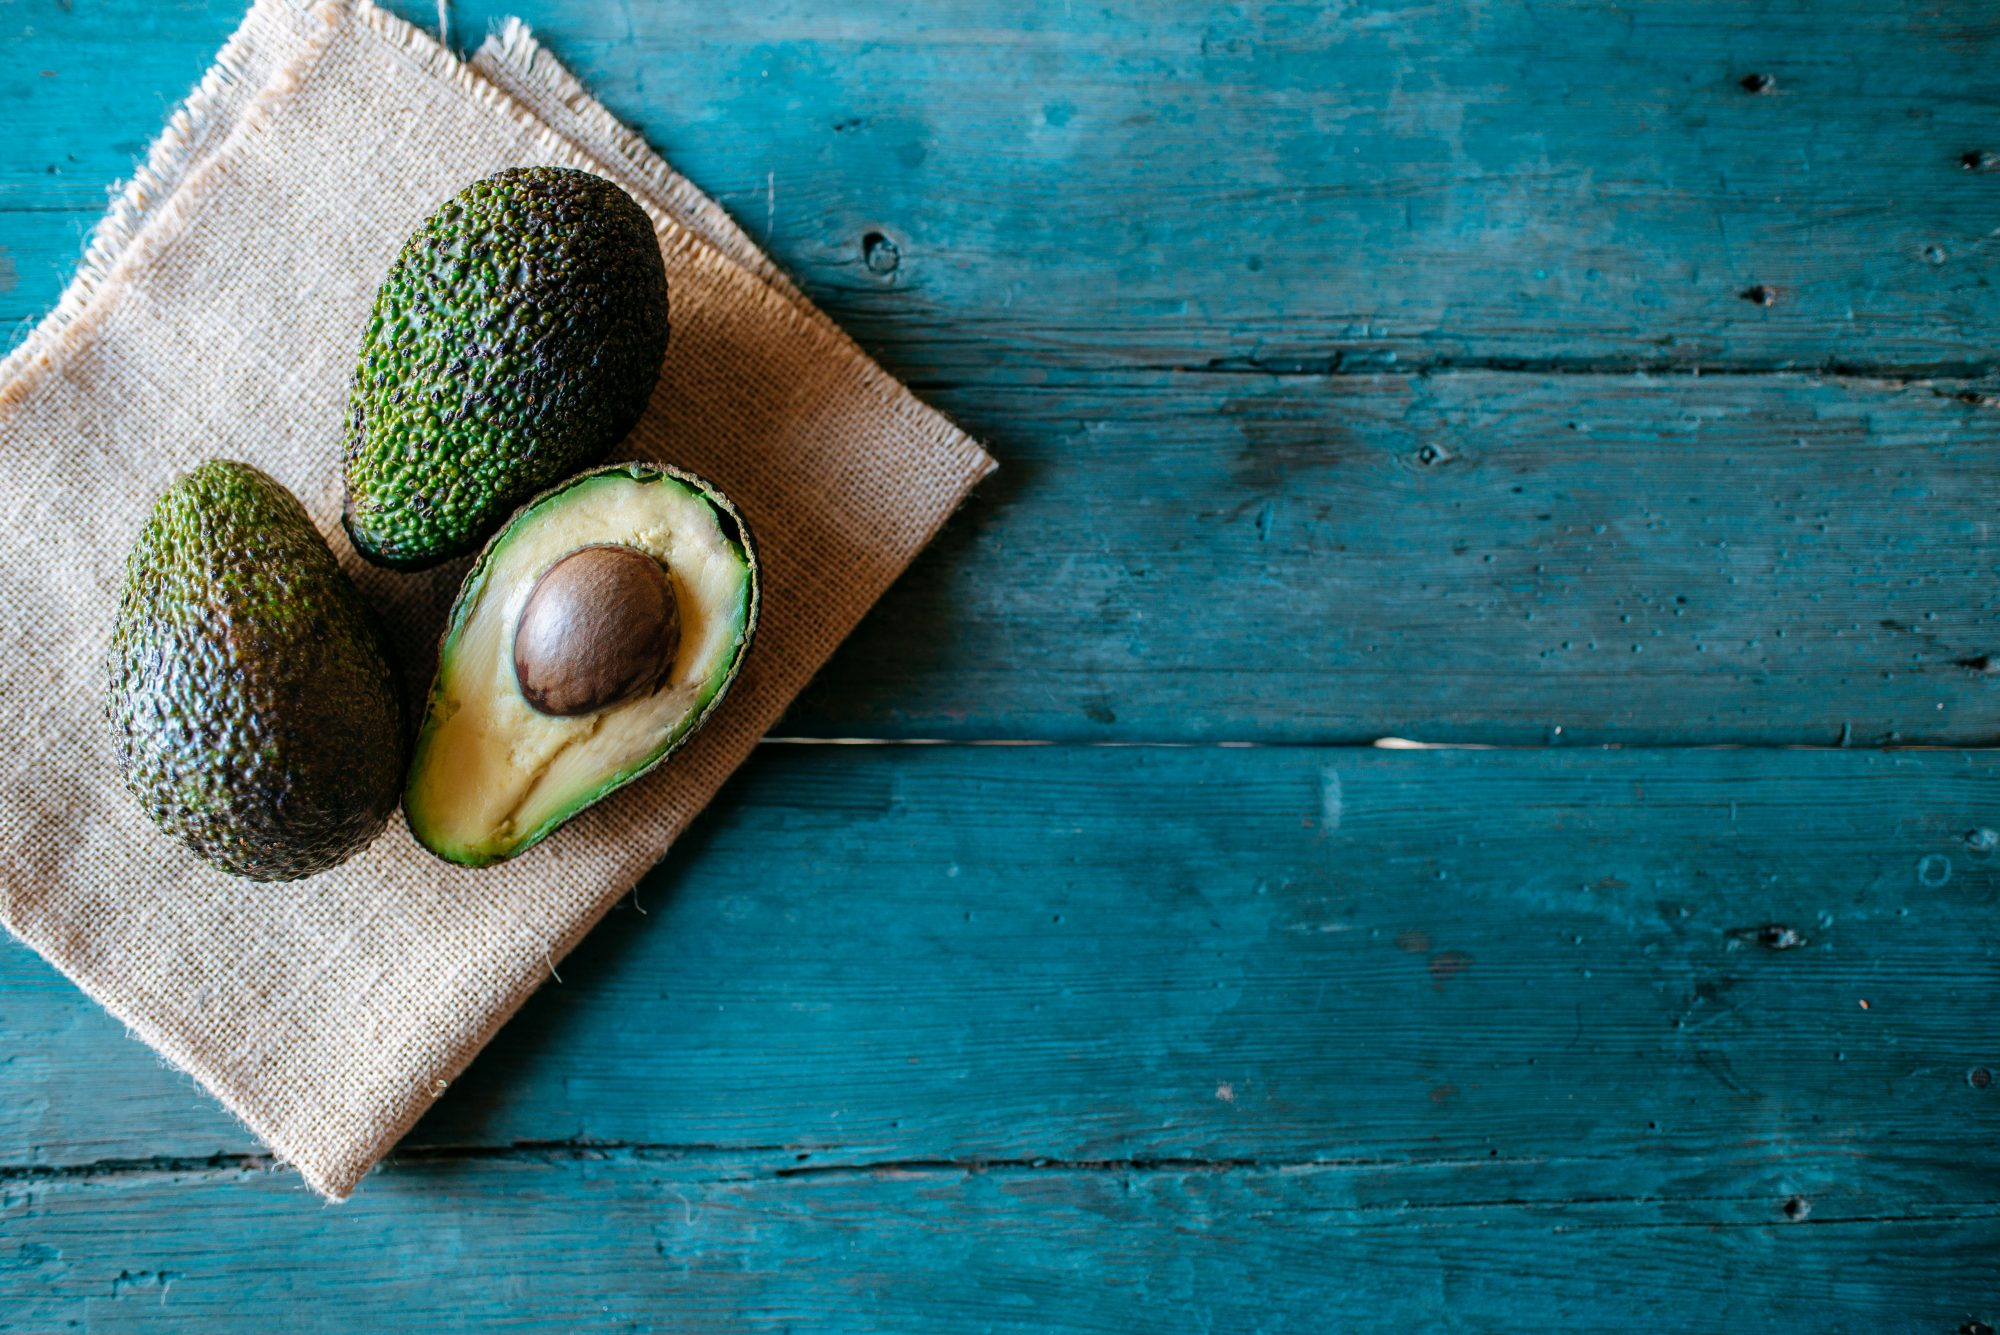 How to make an avocado smoothie